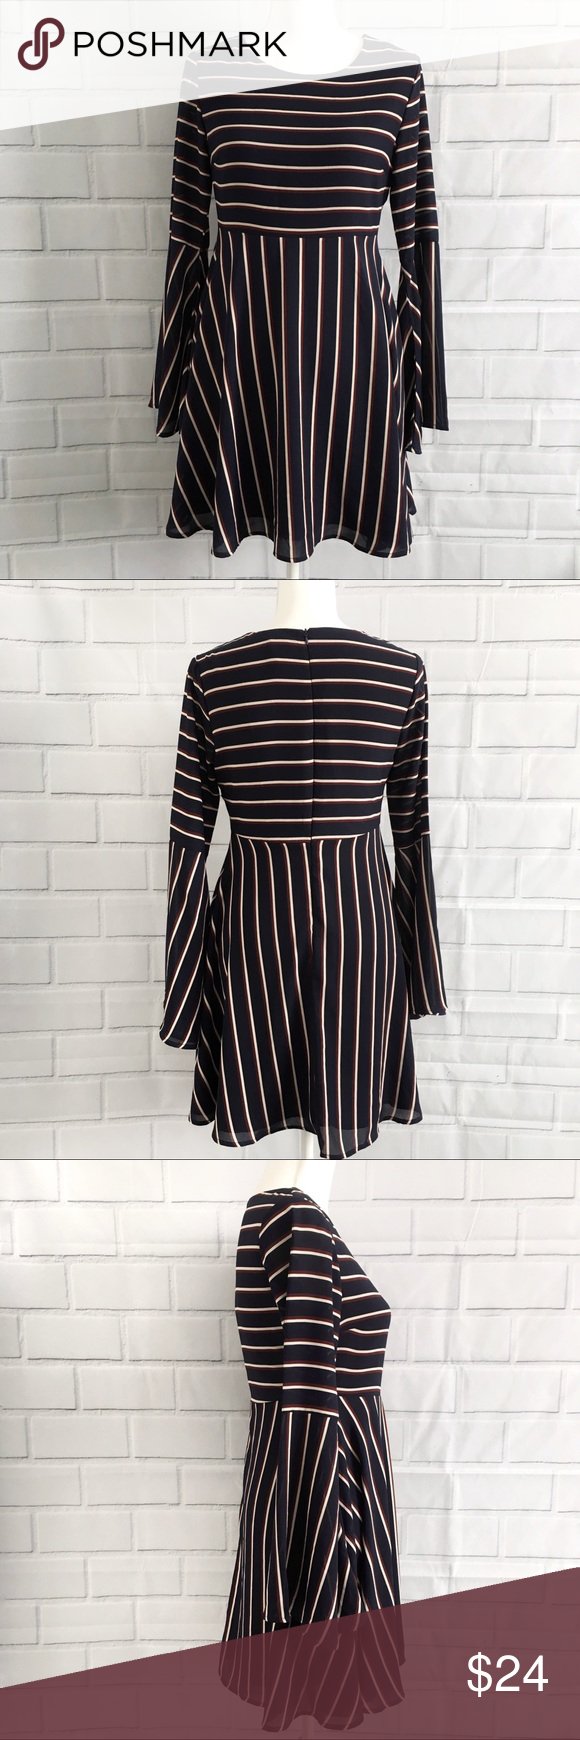 Sadie Robertson Wild Blue Striped BellSleeve Dress Sadie Robertson Wild Blue Striped babydoll Bell sleeves  Dress Size small Navy blue with maroon and off-white stripes Back zipper Sadie Robertson Dresses #sadierobertson